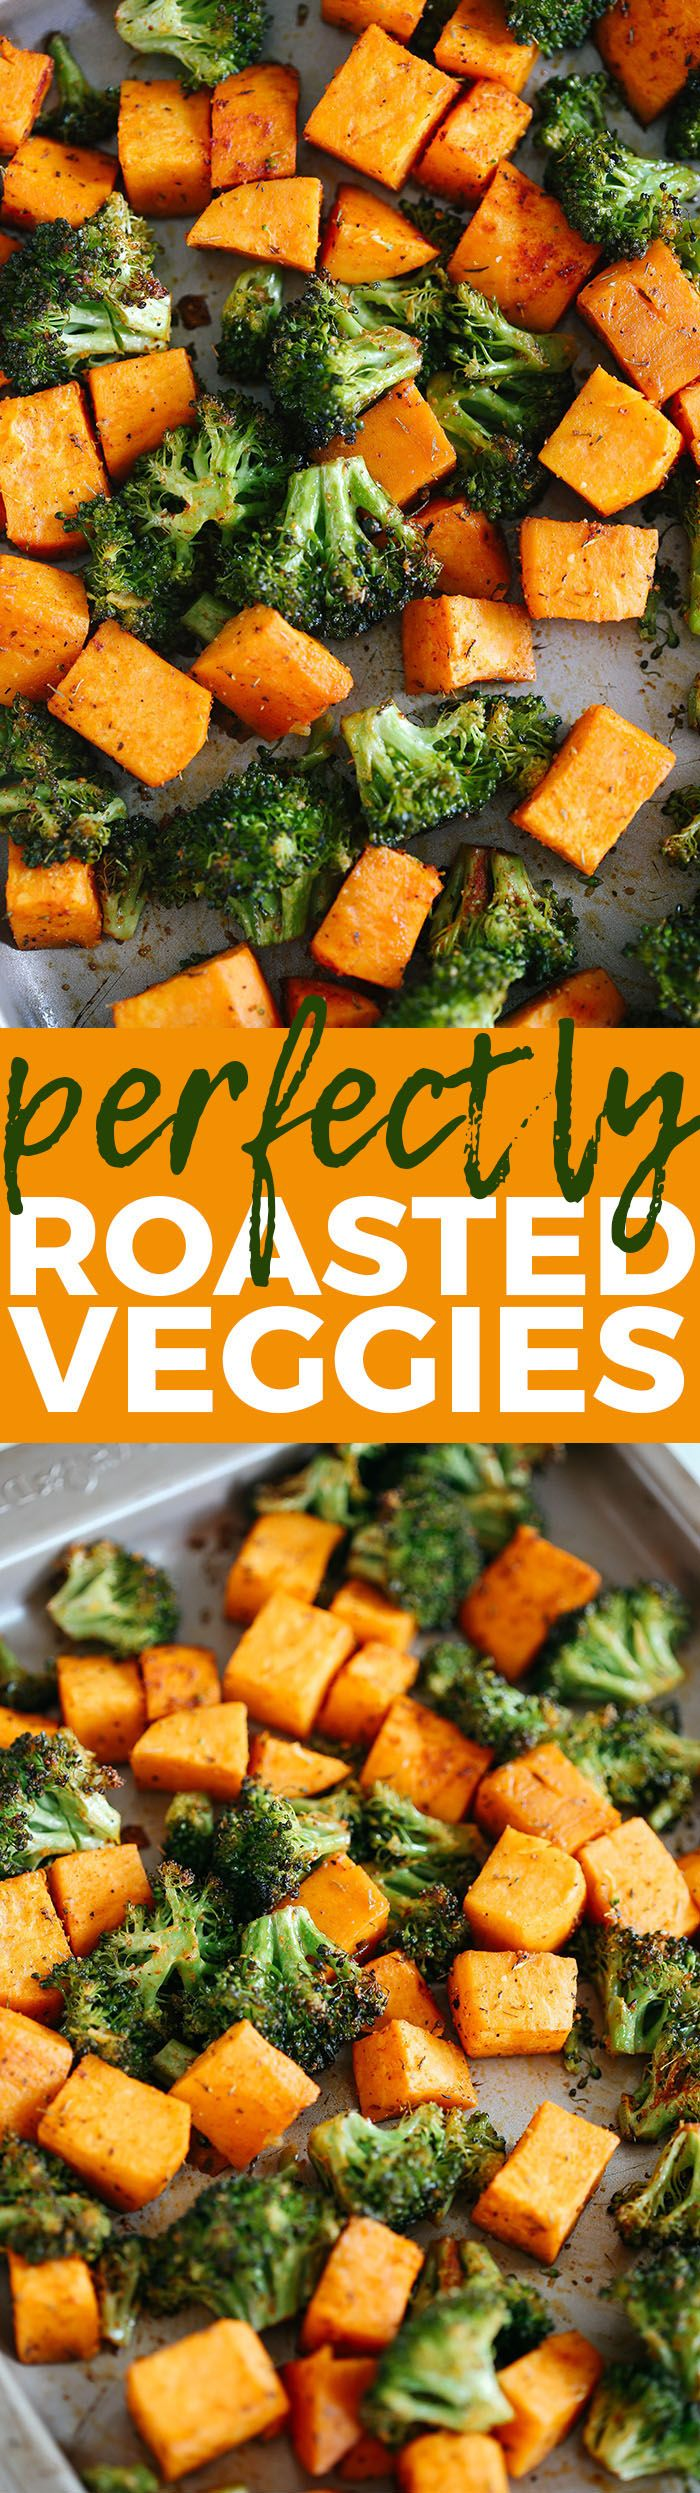 These Perfectly Roasted Broccoli and Sweet Potatoes make a delicious healthy side dish and are seasoned to perfection! #whole30